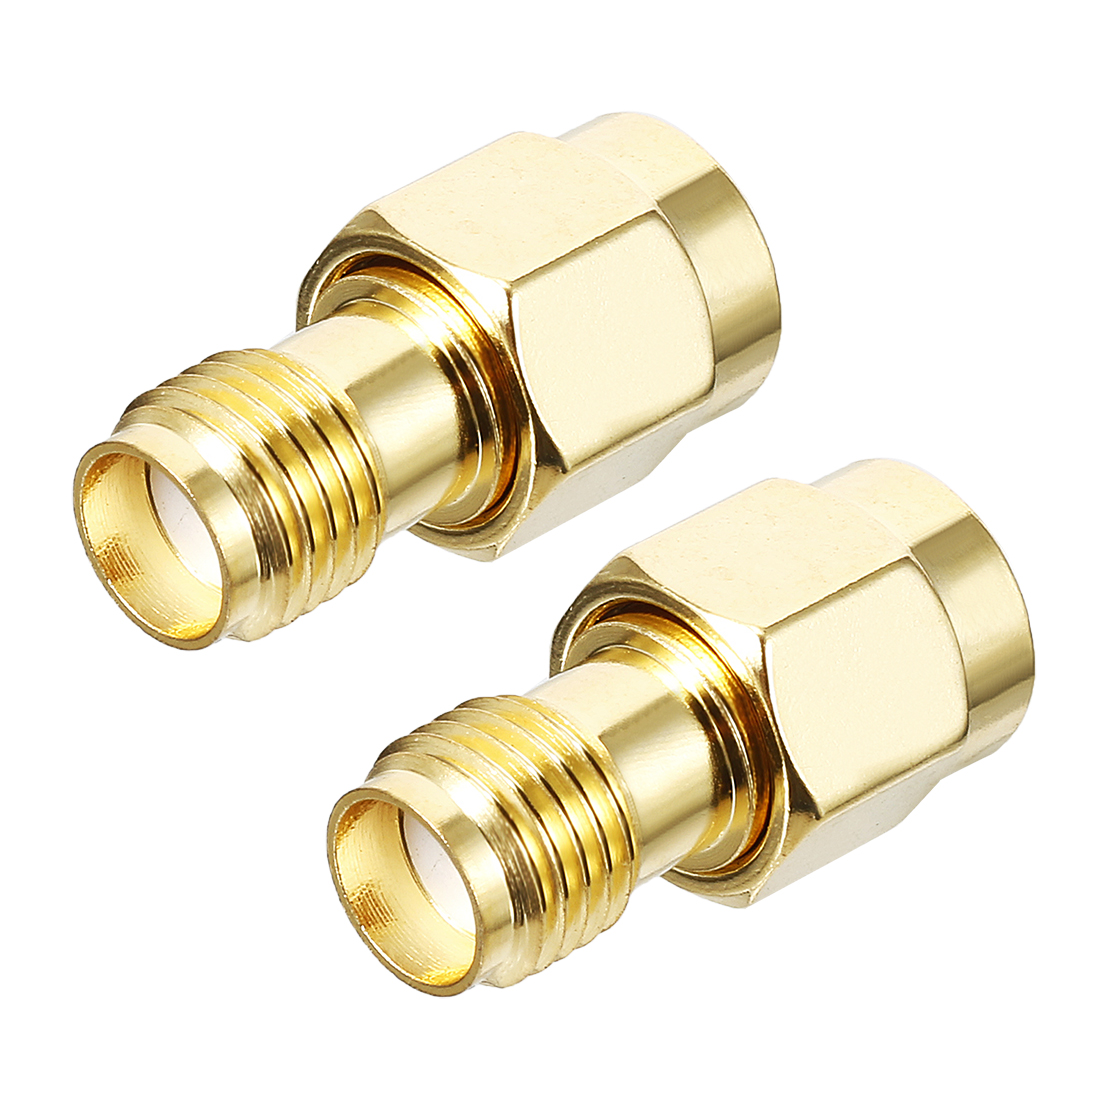 2pcs Gold Tone RP-SMA Male to SMA Female Jack RF Coaxial Adapter Connector